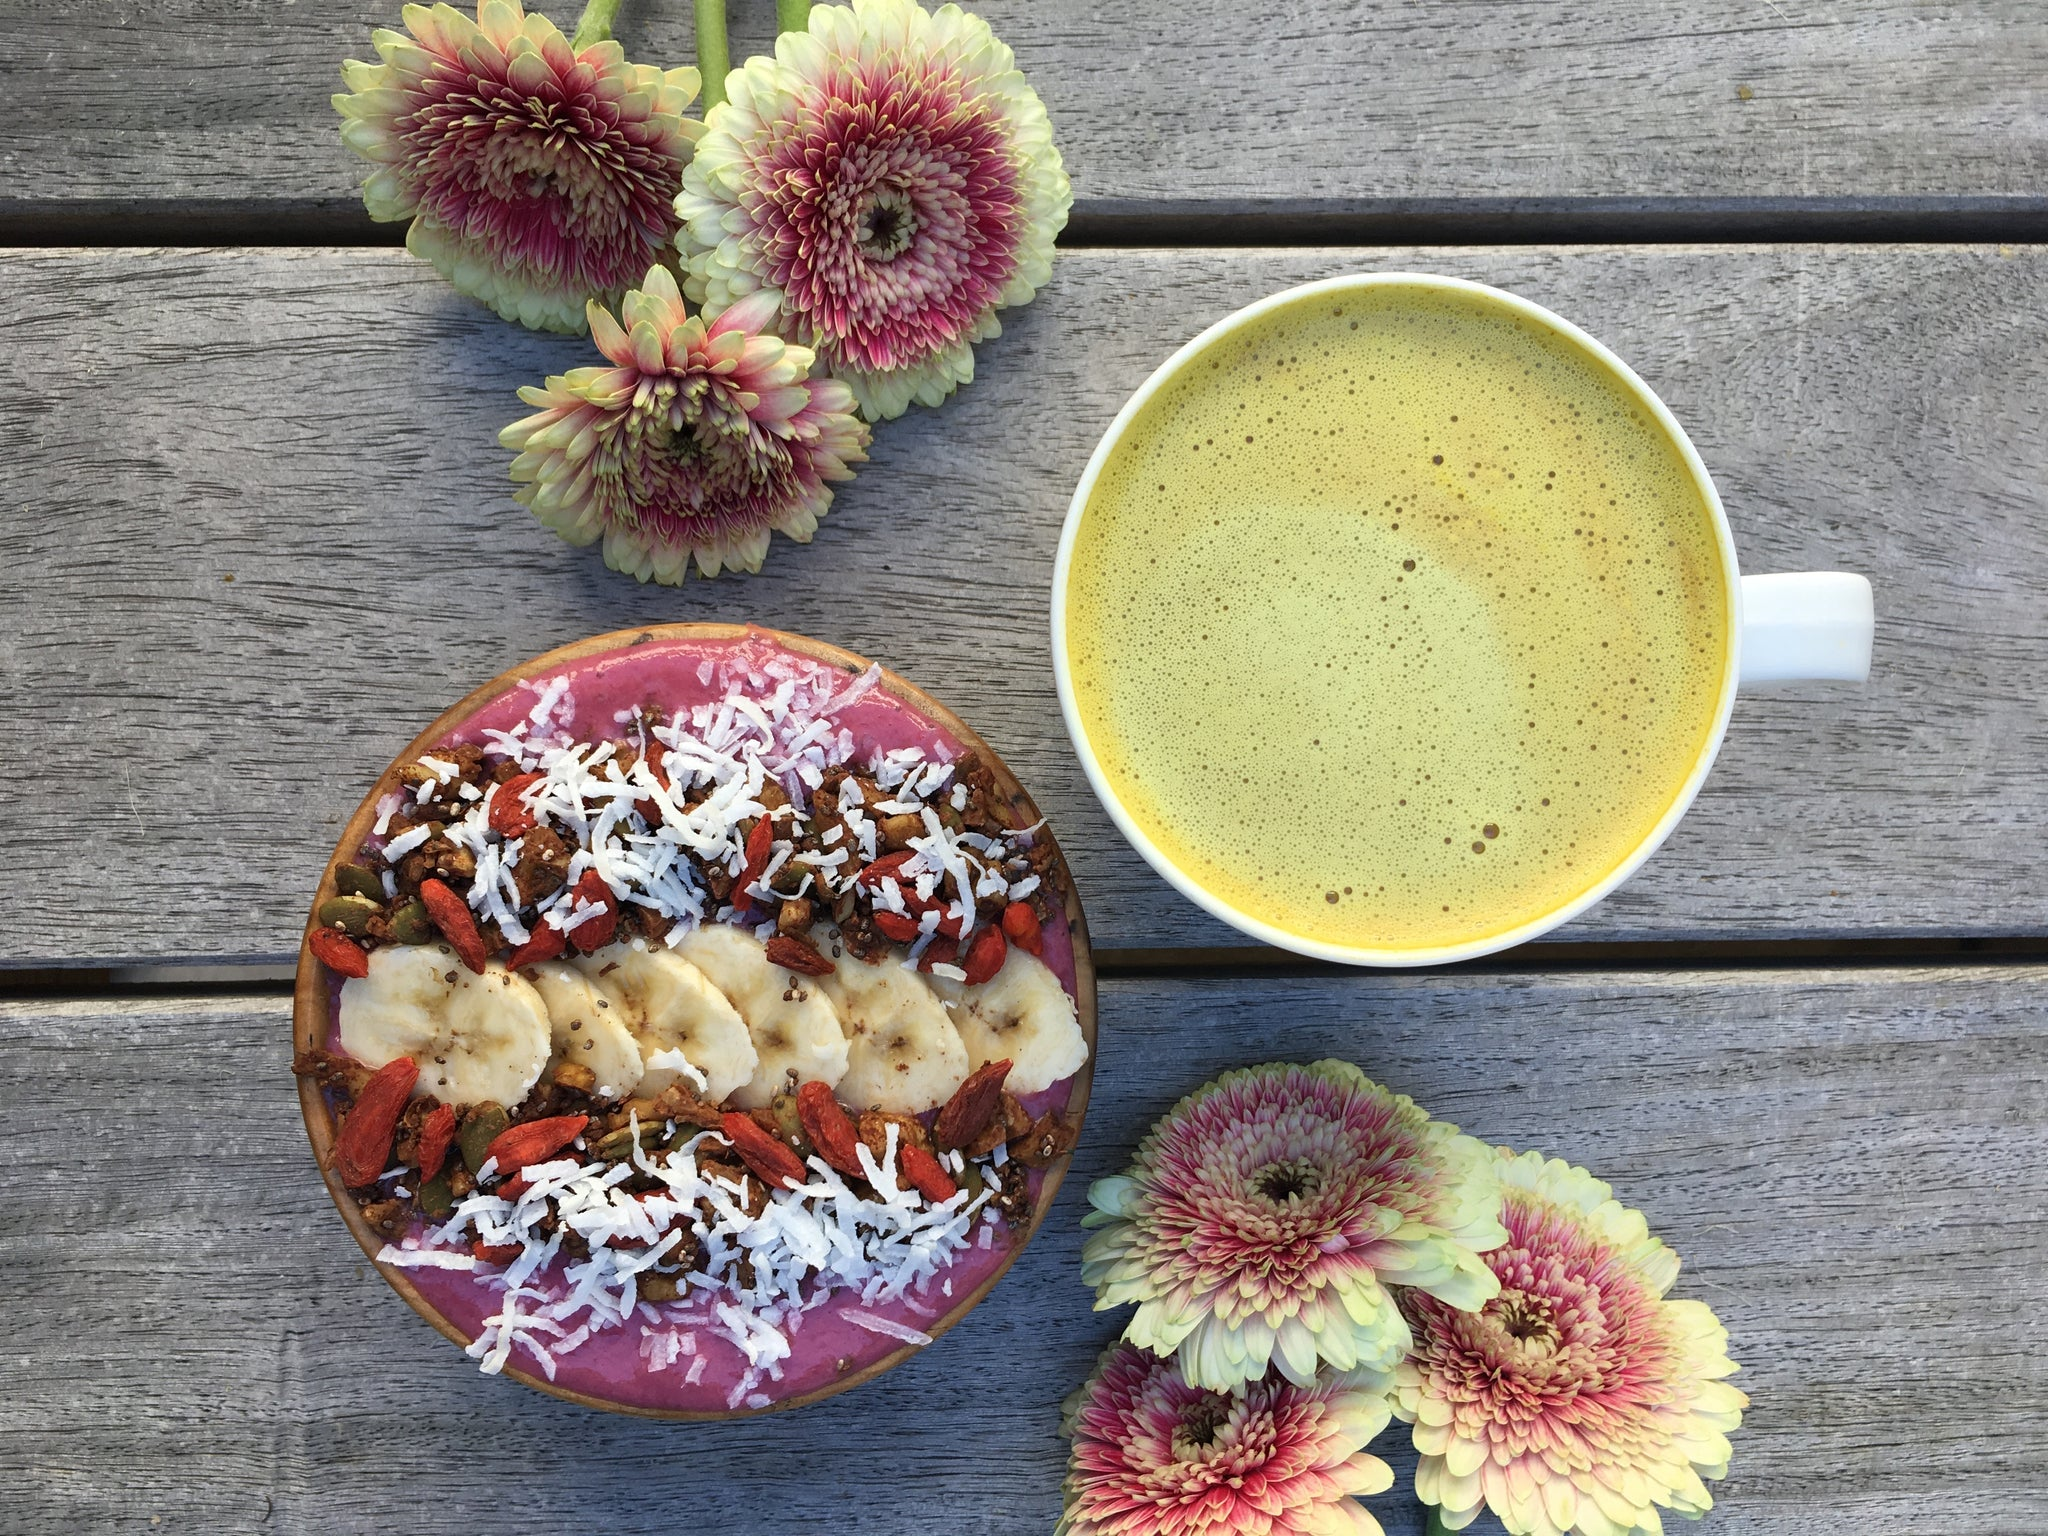 Smoothie bowl on a table